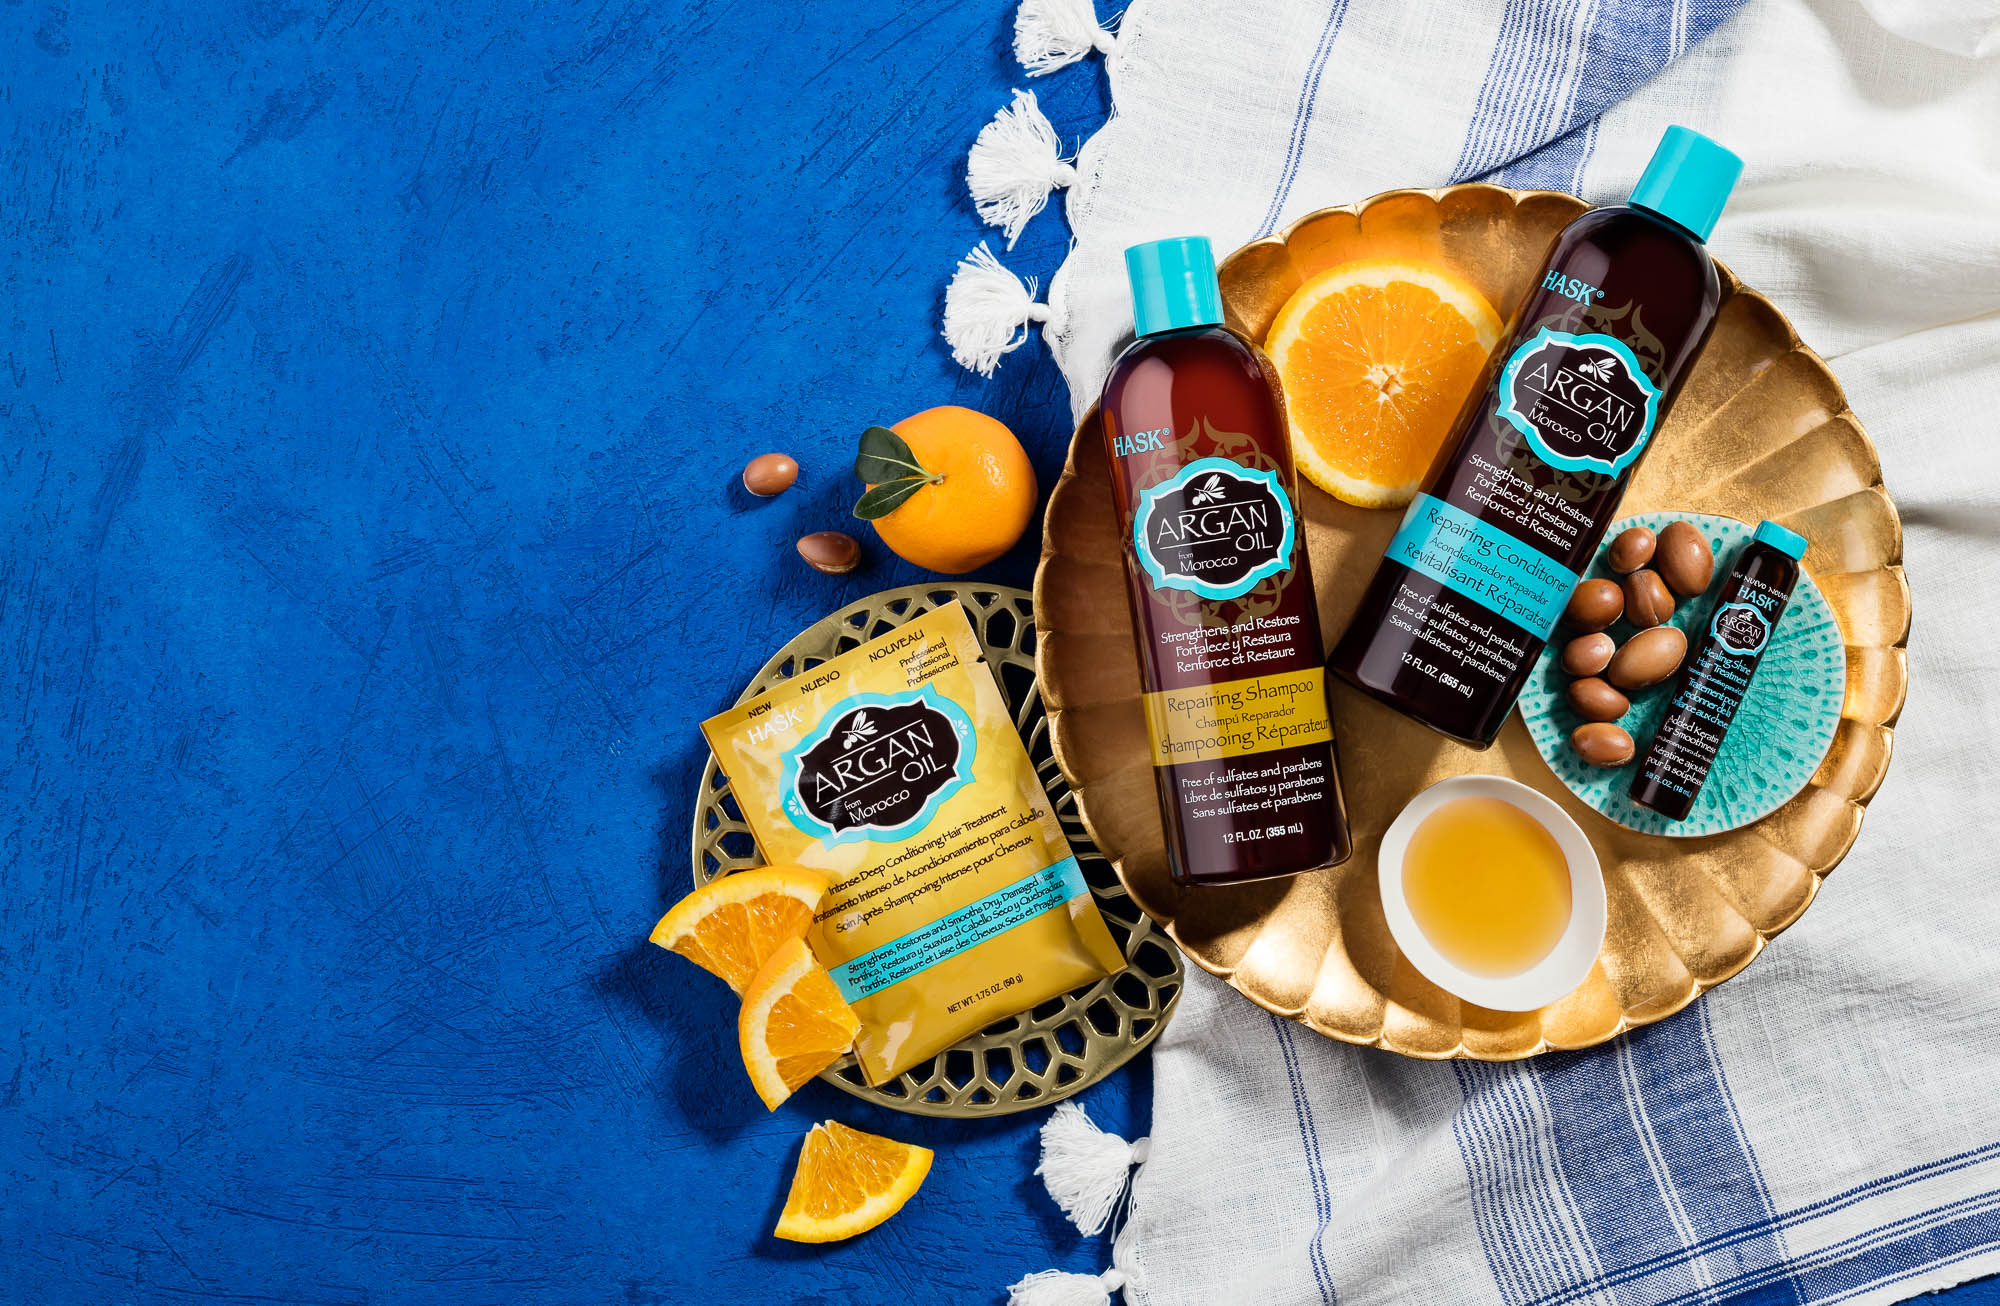 lifestyle still life photography with argan oil shampoo and conditioner